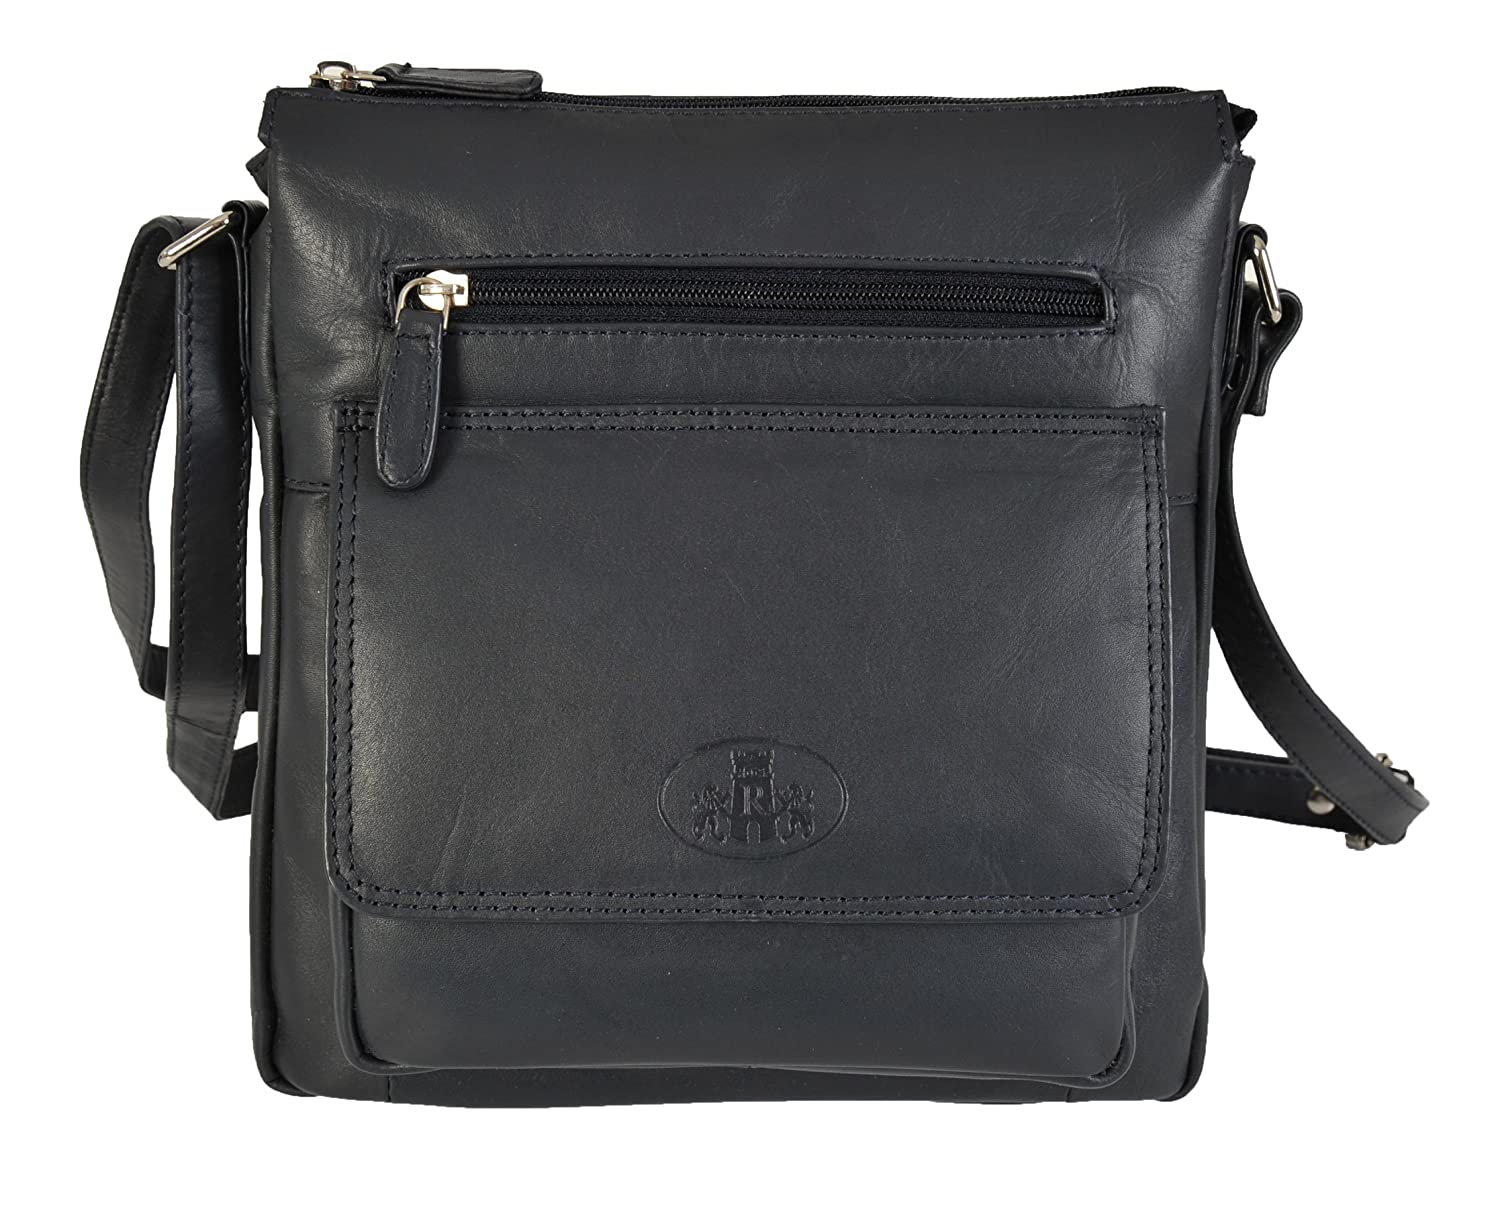 dbfdfa1d1014 Rowallan Leather Crossbody Bag In Various Colours 31-9767 (Navy)   Amazon.co.uk  Shoes   Bags